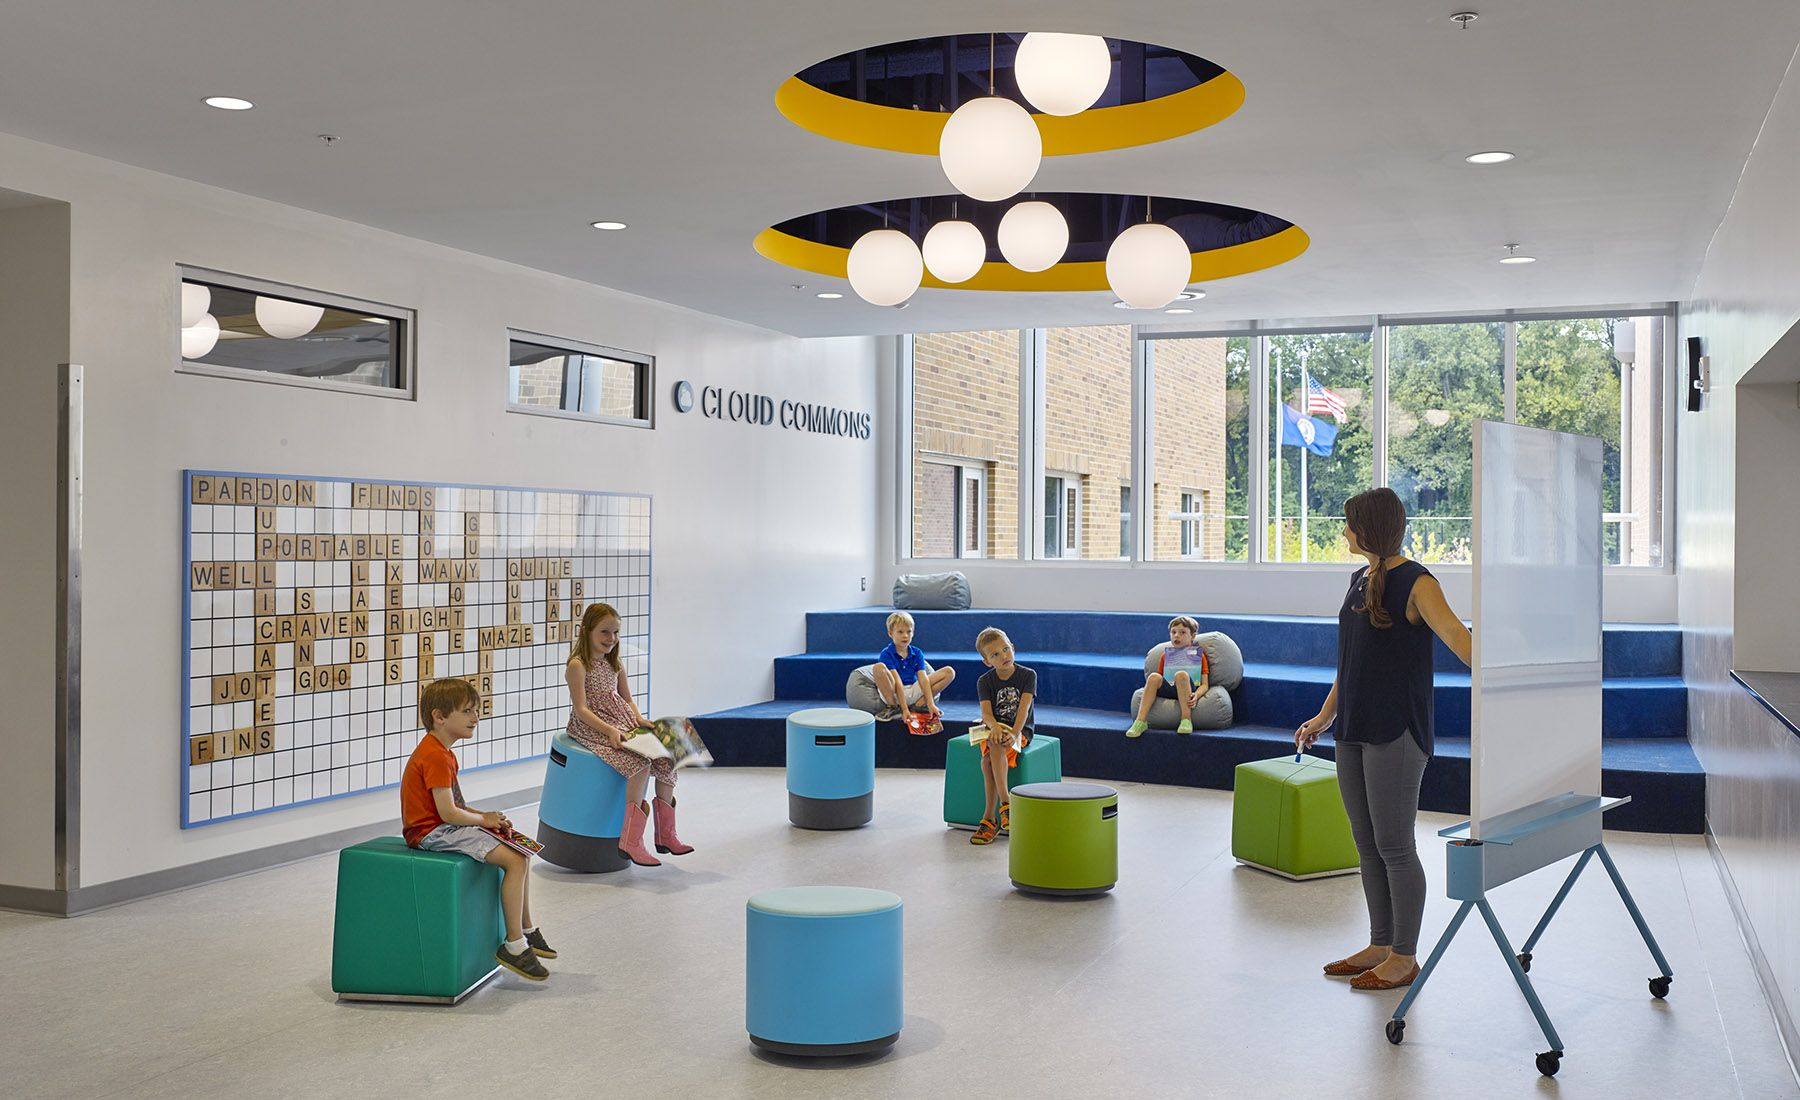 Discovery Elementary School K 12 Architecture And Sustainable Design Schools Pinterest